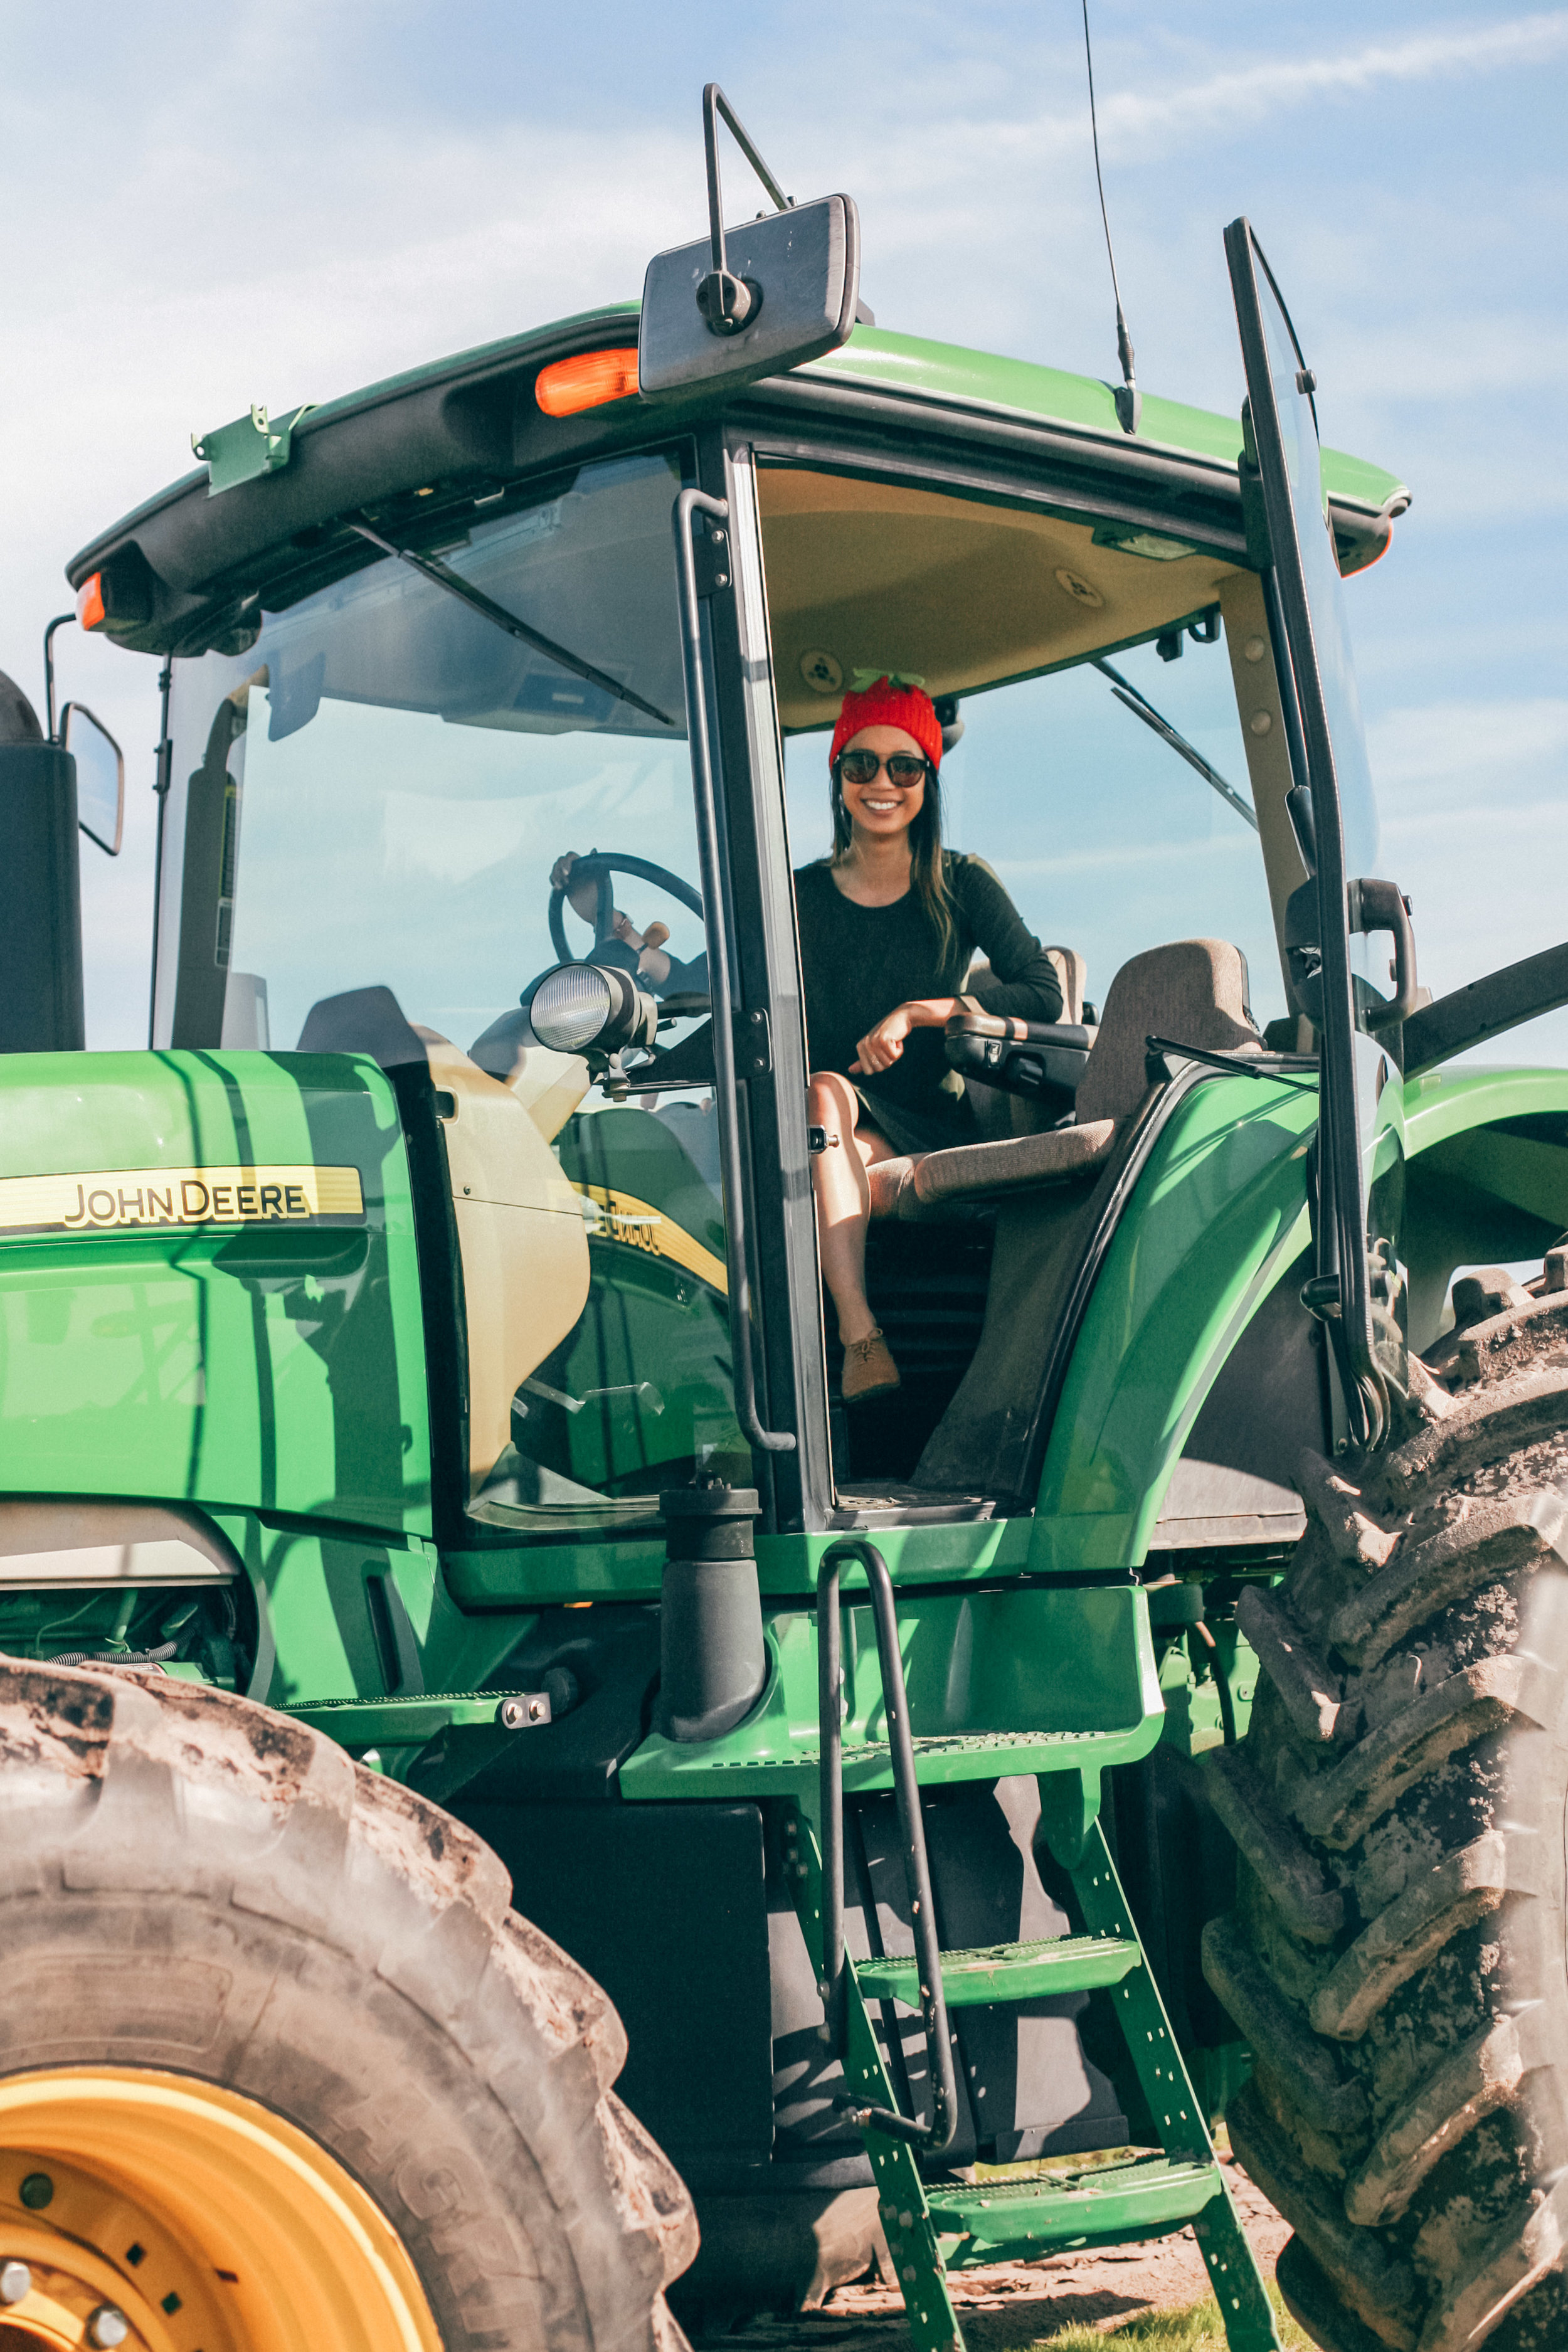 Look at how tiny I am in this huge tractor!